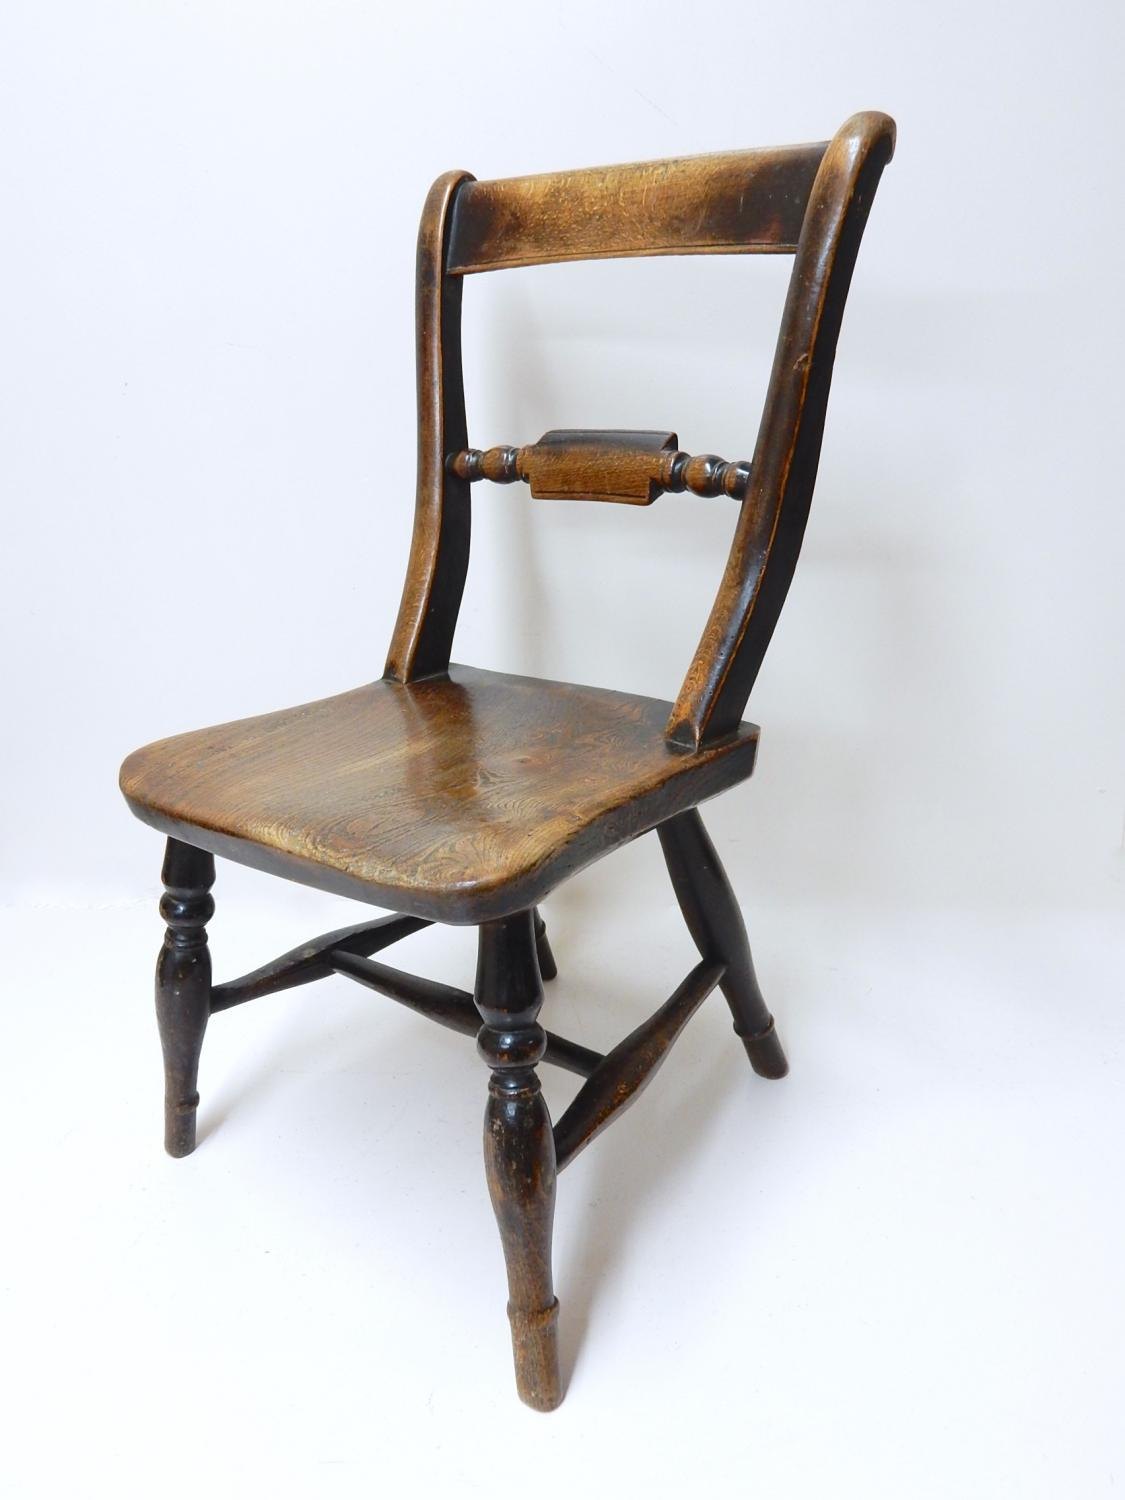 Antique Windsor Child's Chair - Antique Windsor Child's Chair In Sold